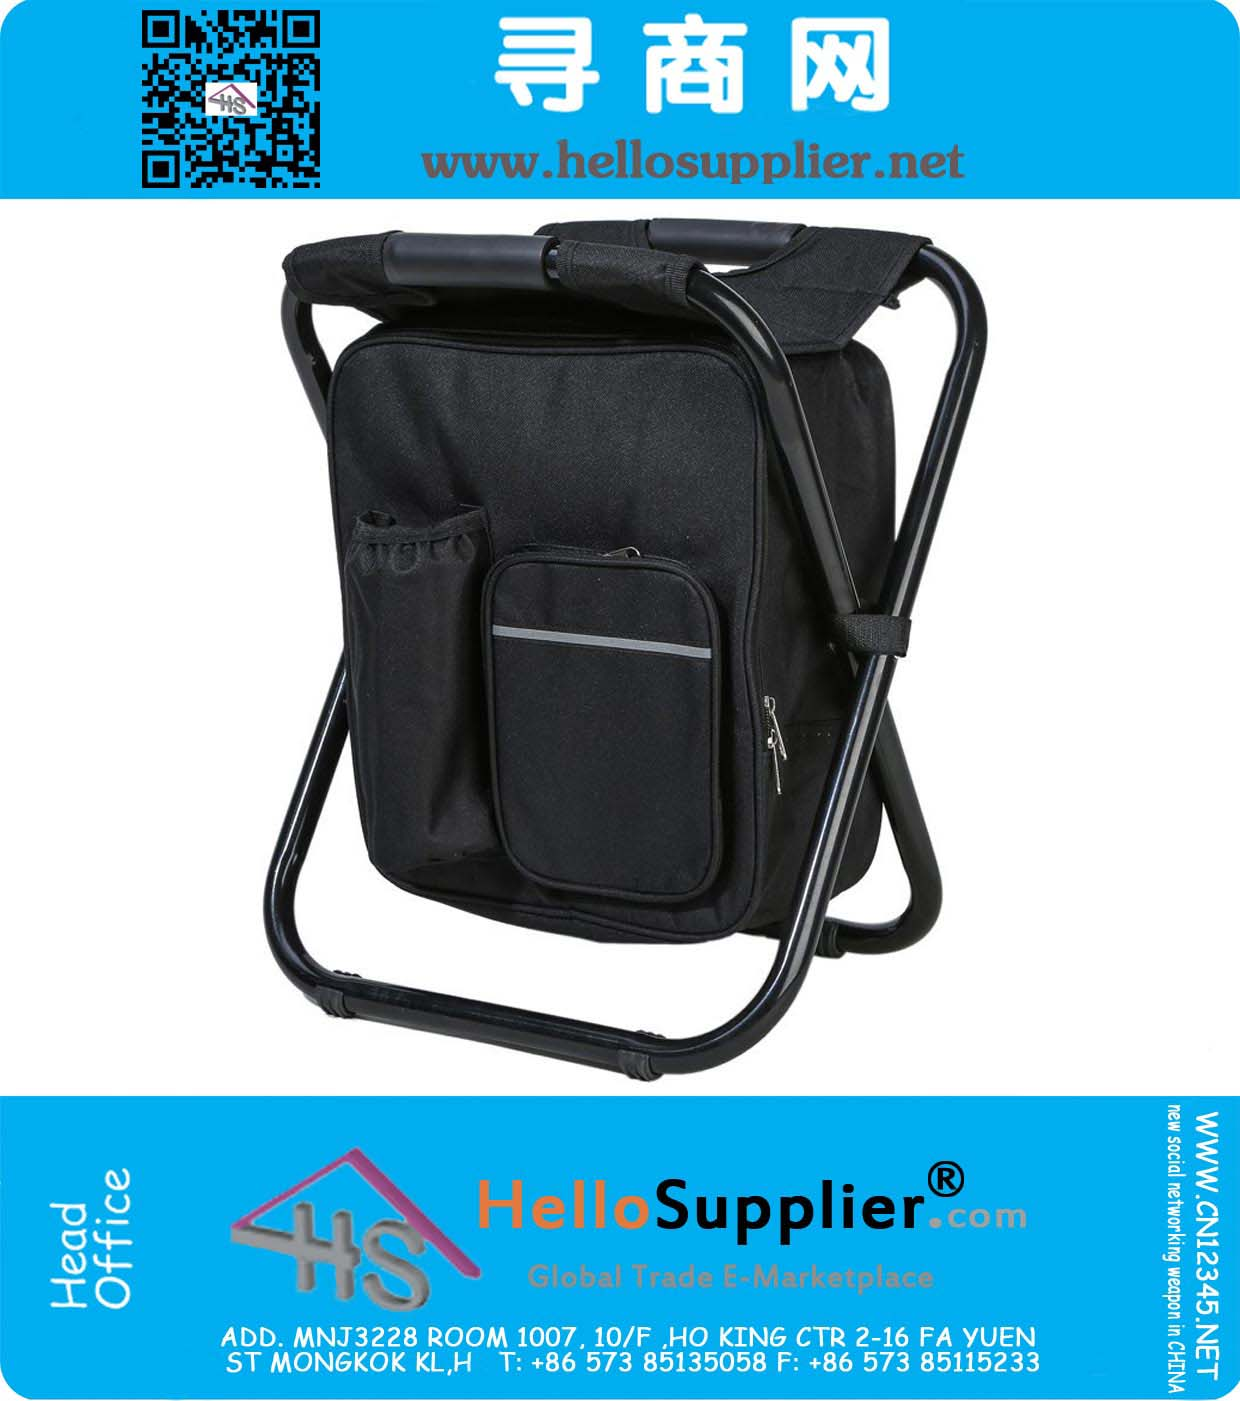 fishing chair best price floral upholstered multi function backpack foldable with cooler bag for beach camping and